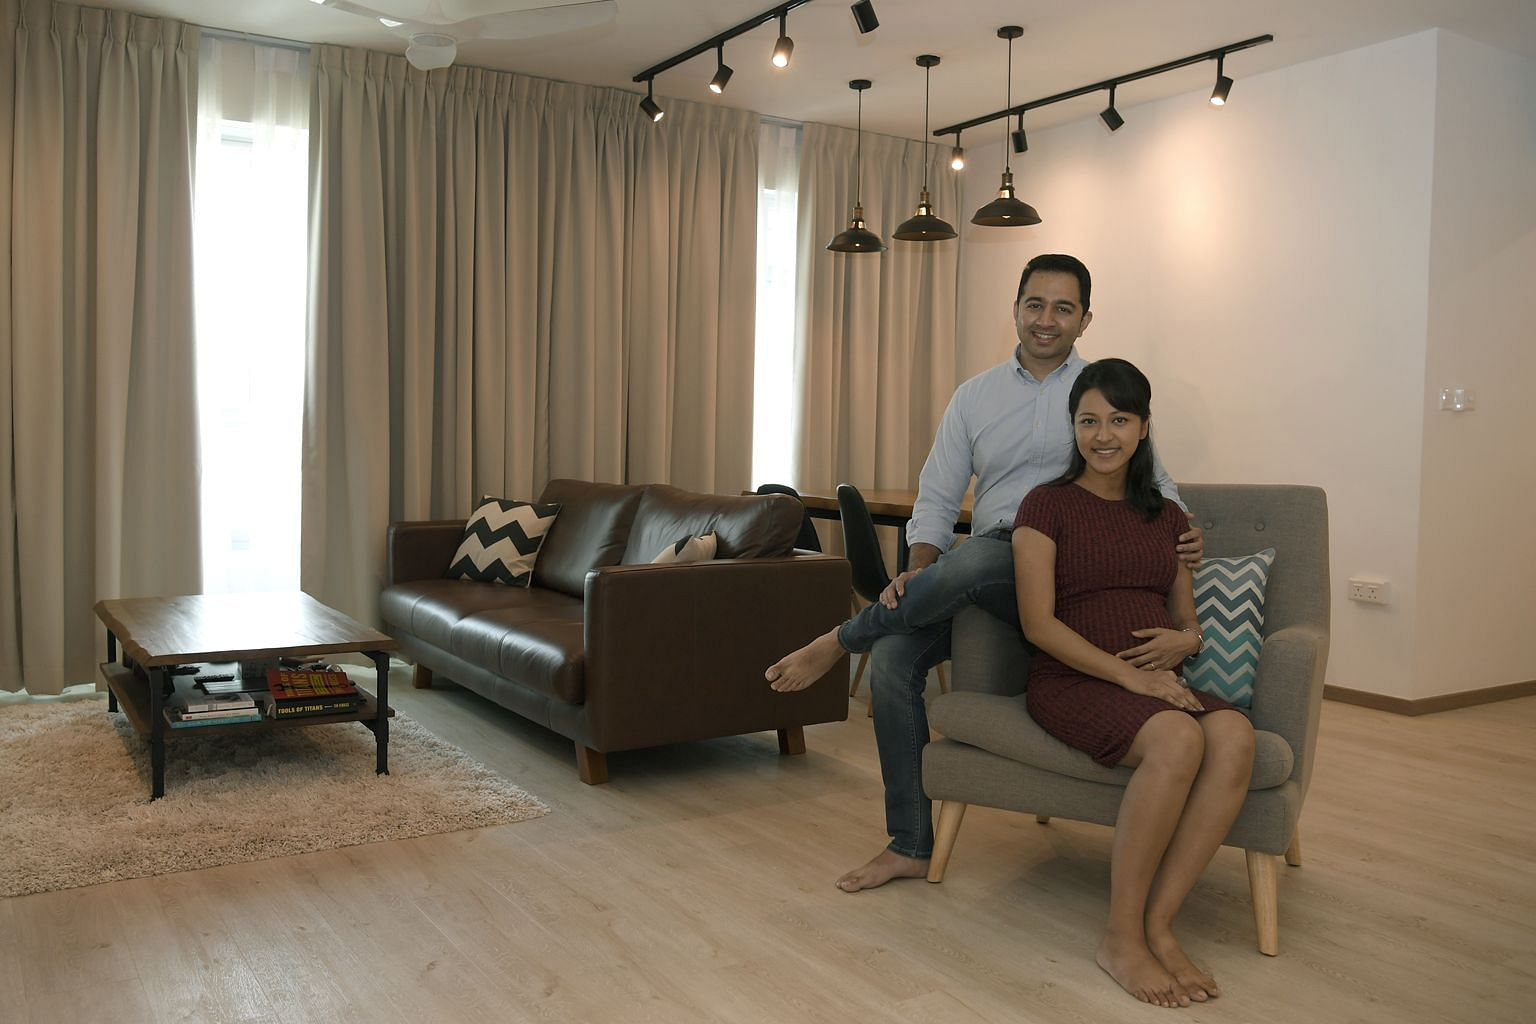 Above: For Mr Nair and Ms Pandit, who are expecting their first child, buying a spacious home was a priority as they wanted their child to have the space to crawl about and run around in. Their 1,200 sq ft five-room flat in Clementi cost about $630,0